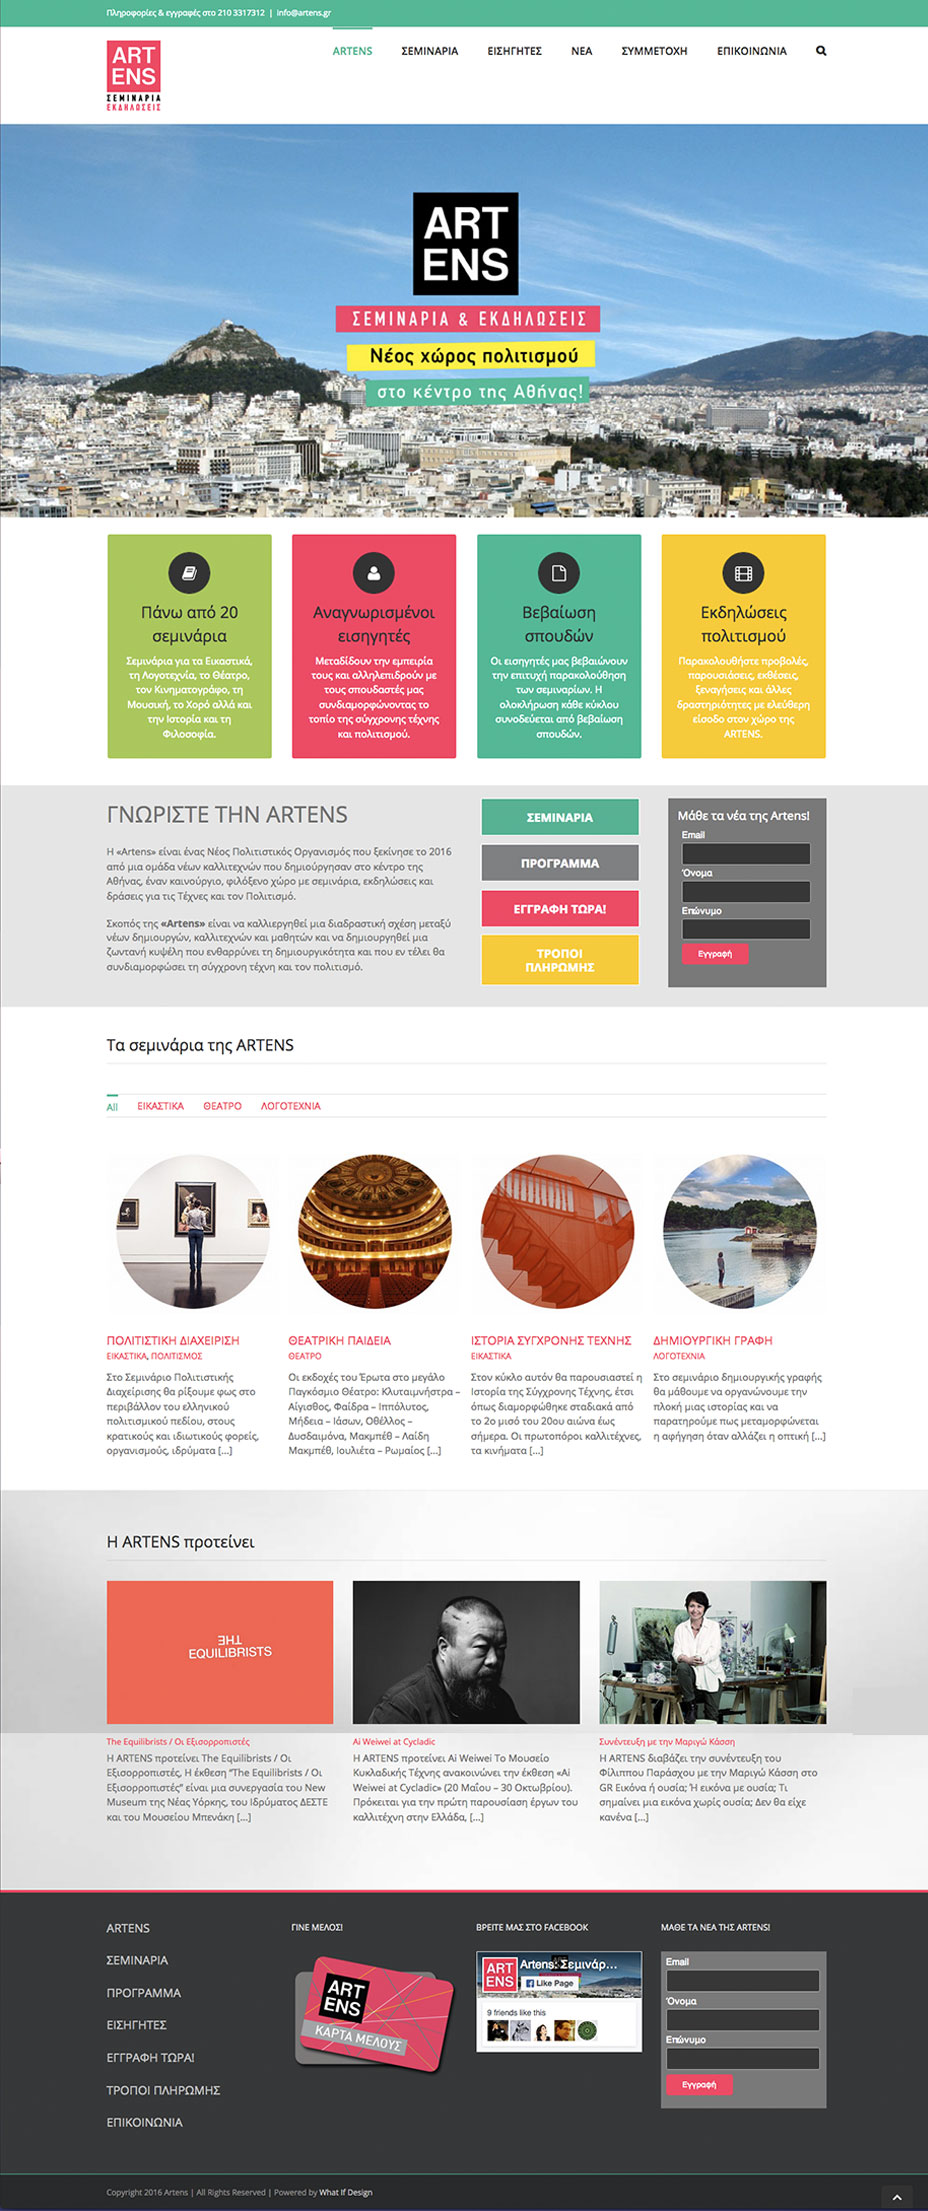 artens website preview by whatif design in athens